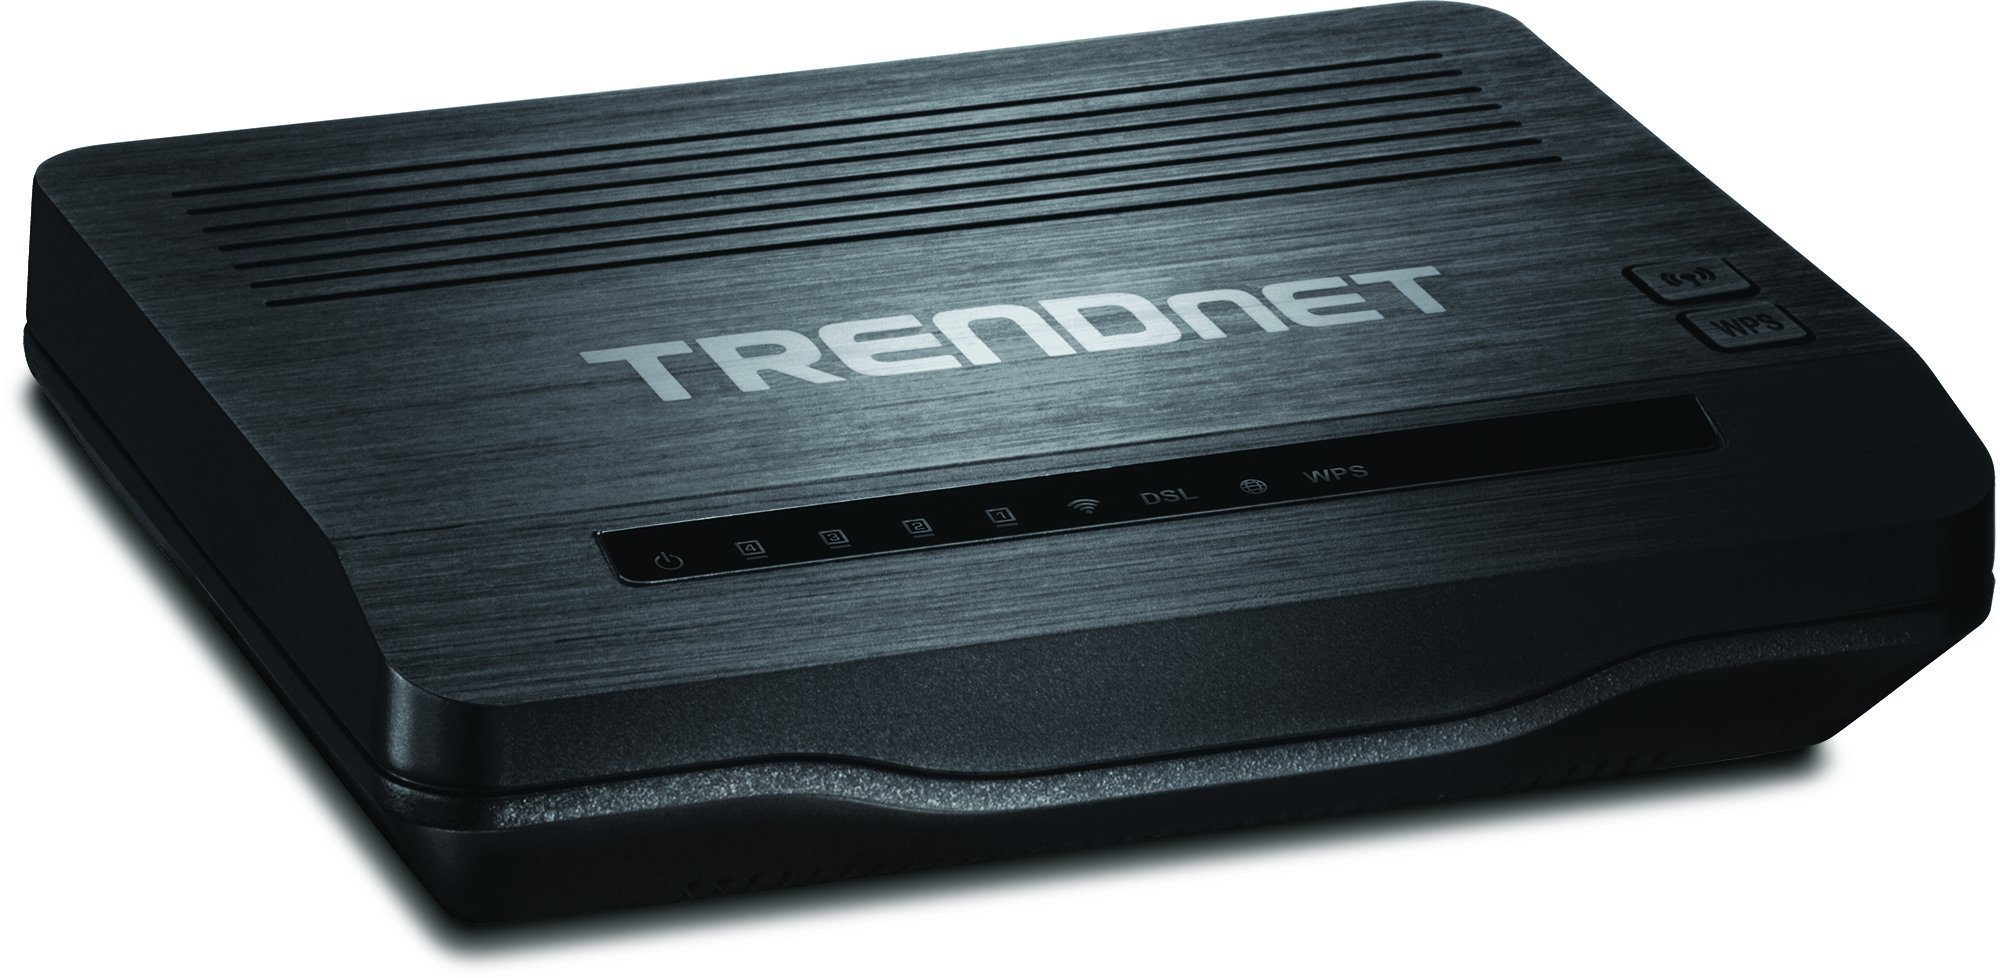 TRENDnet N300 Wireless ADSL 2+ Modem Router, Compatible with ADSL 2/2+ ISP Networks, 4 x 10/100 Mbps LAN Ports, 1 x RJ-11 WAN Port, TEW-722BRM (Renewed) by TRENDnet